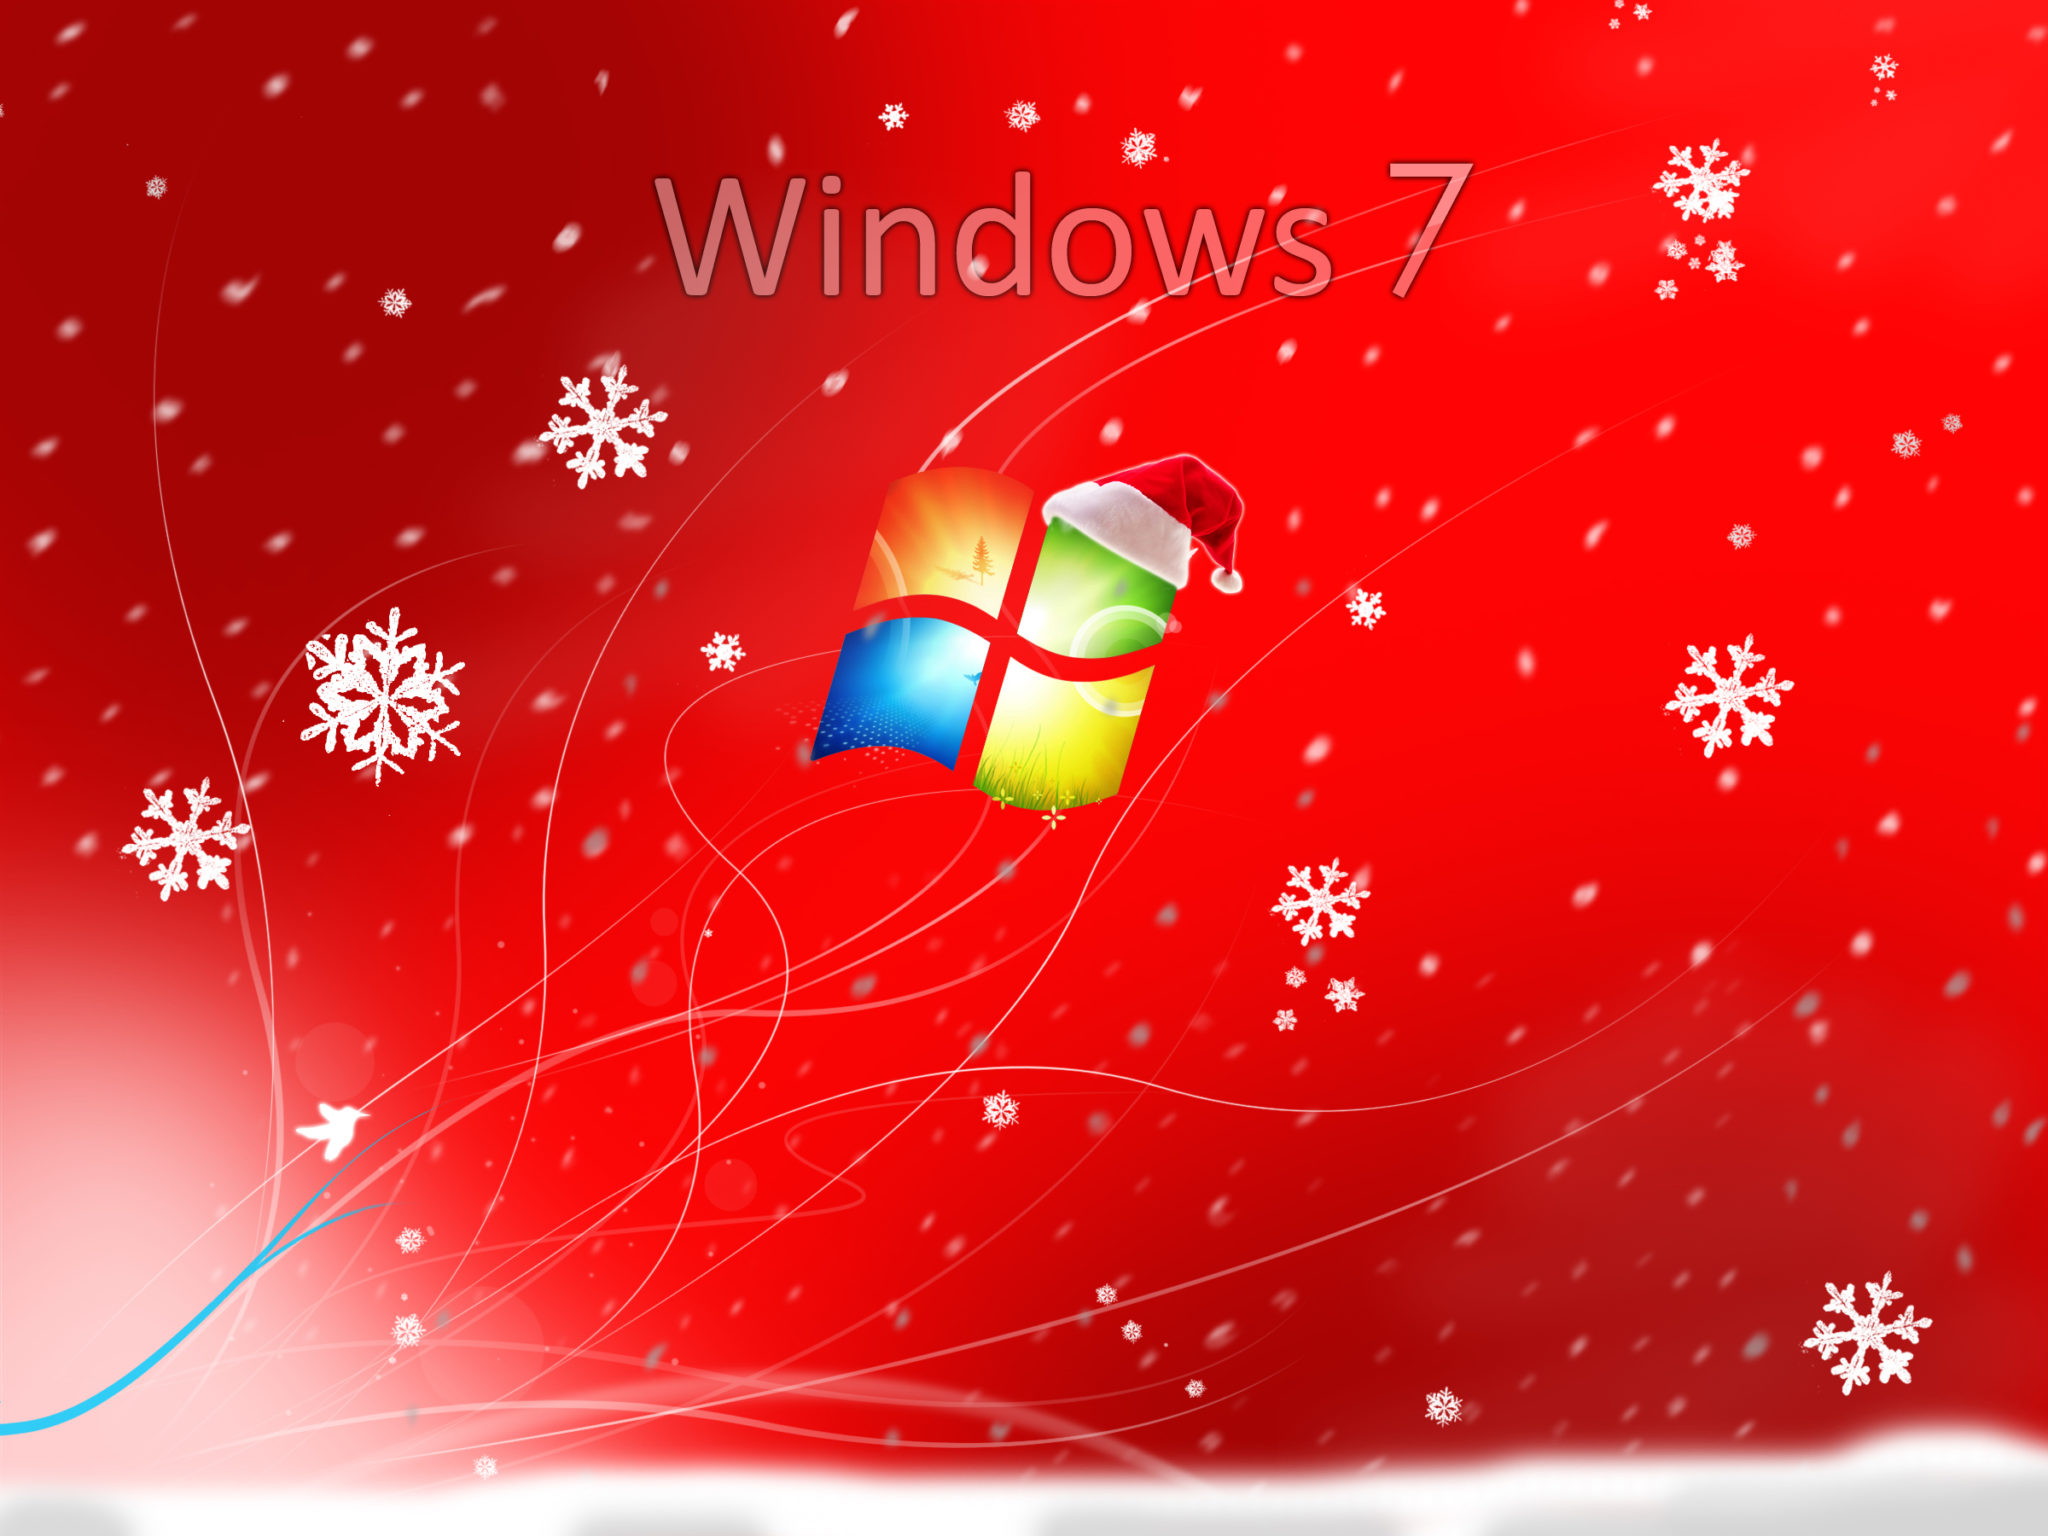 Windows_7_xMas_Wallpaper_v_1_by_atti12 Merry Christmas from the WindowsInstructed team Merry Christmas from the WindowsInstructed team